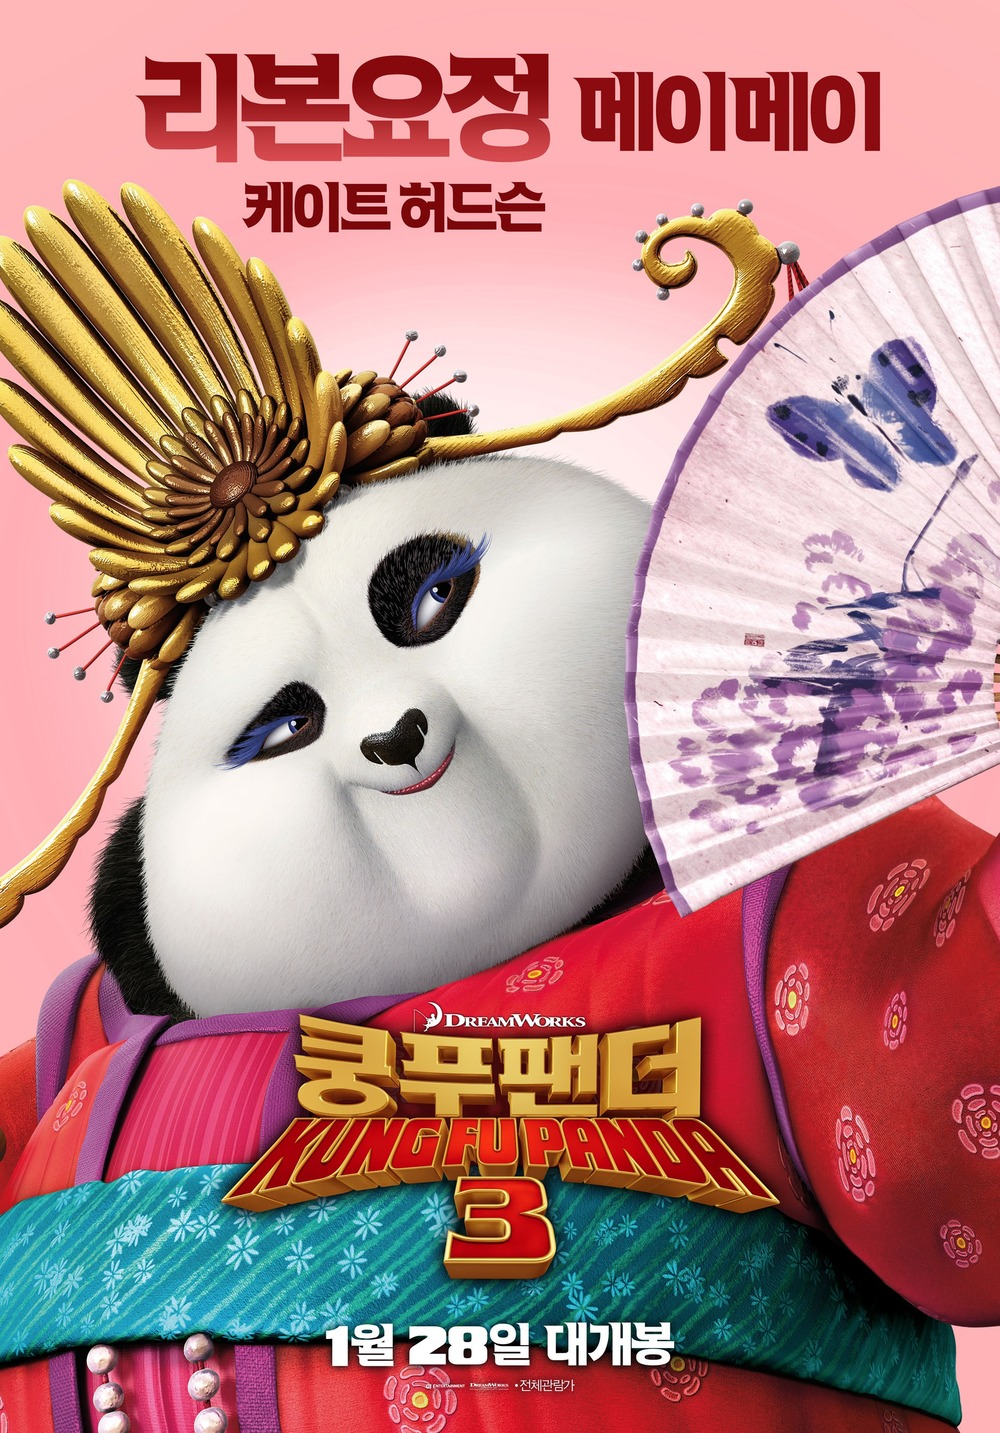 Kung Fu Panda 2 DVD and Blu-ray release date was set for December 13 ...